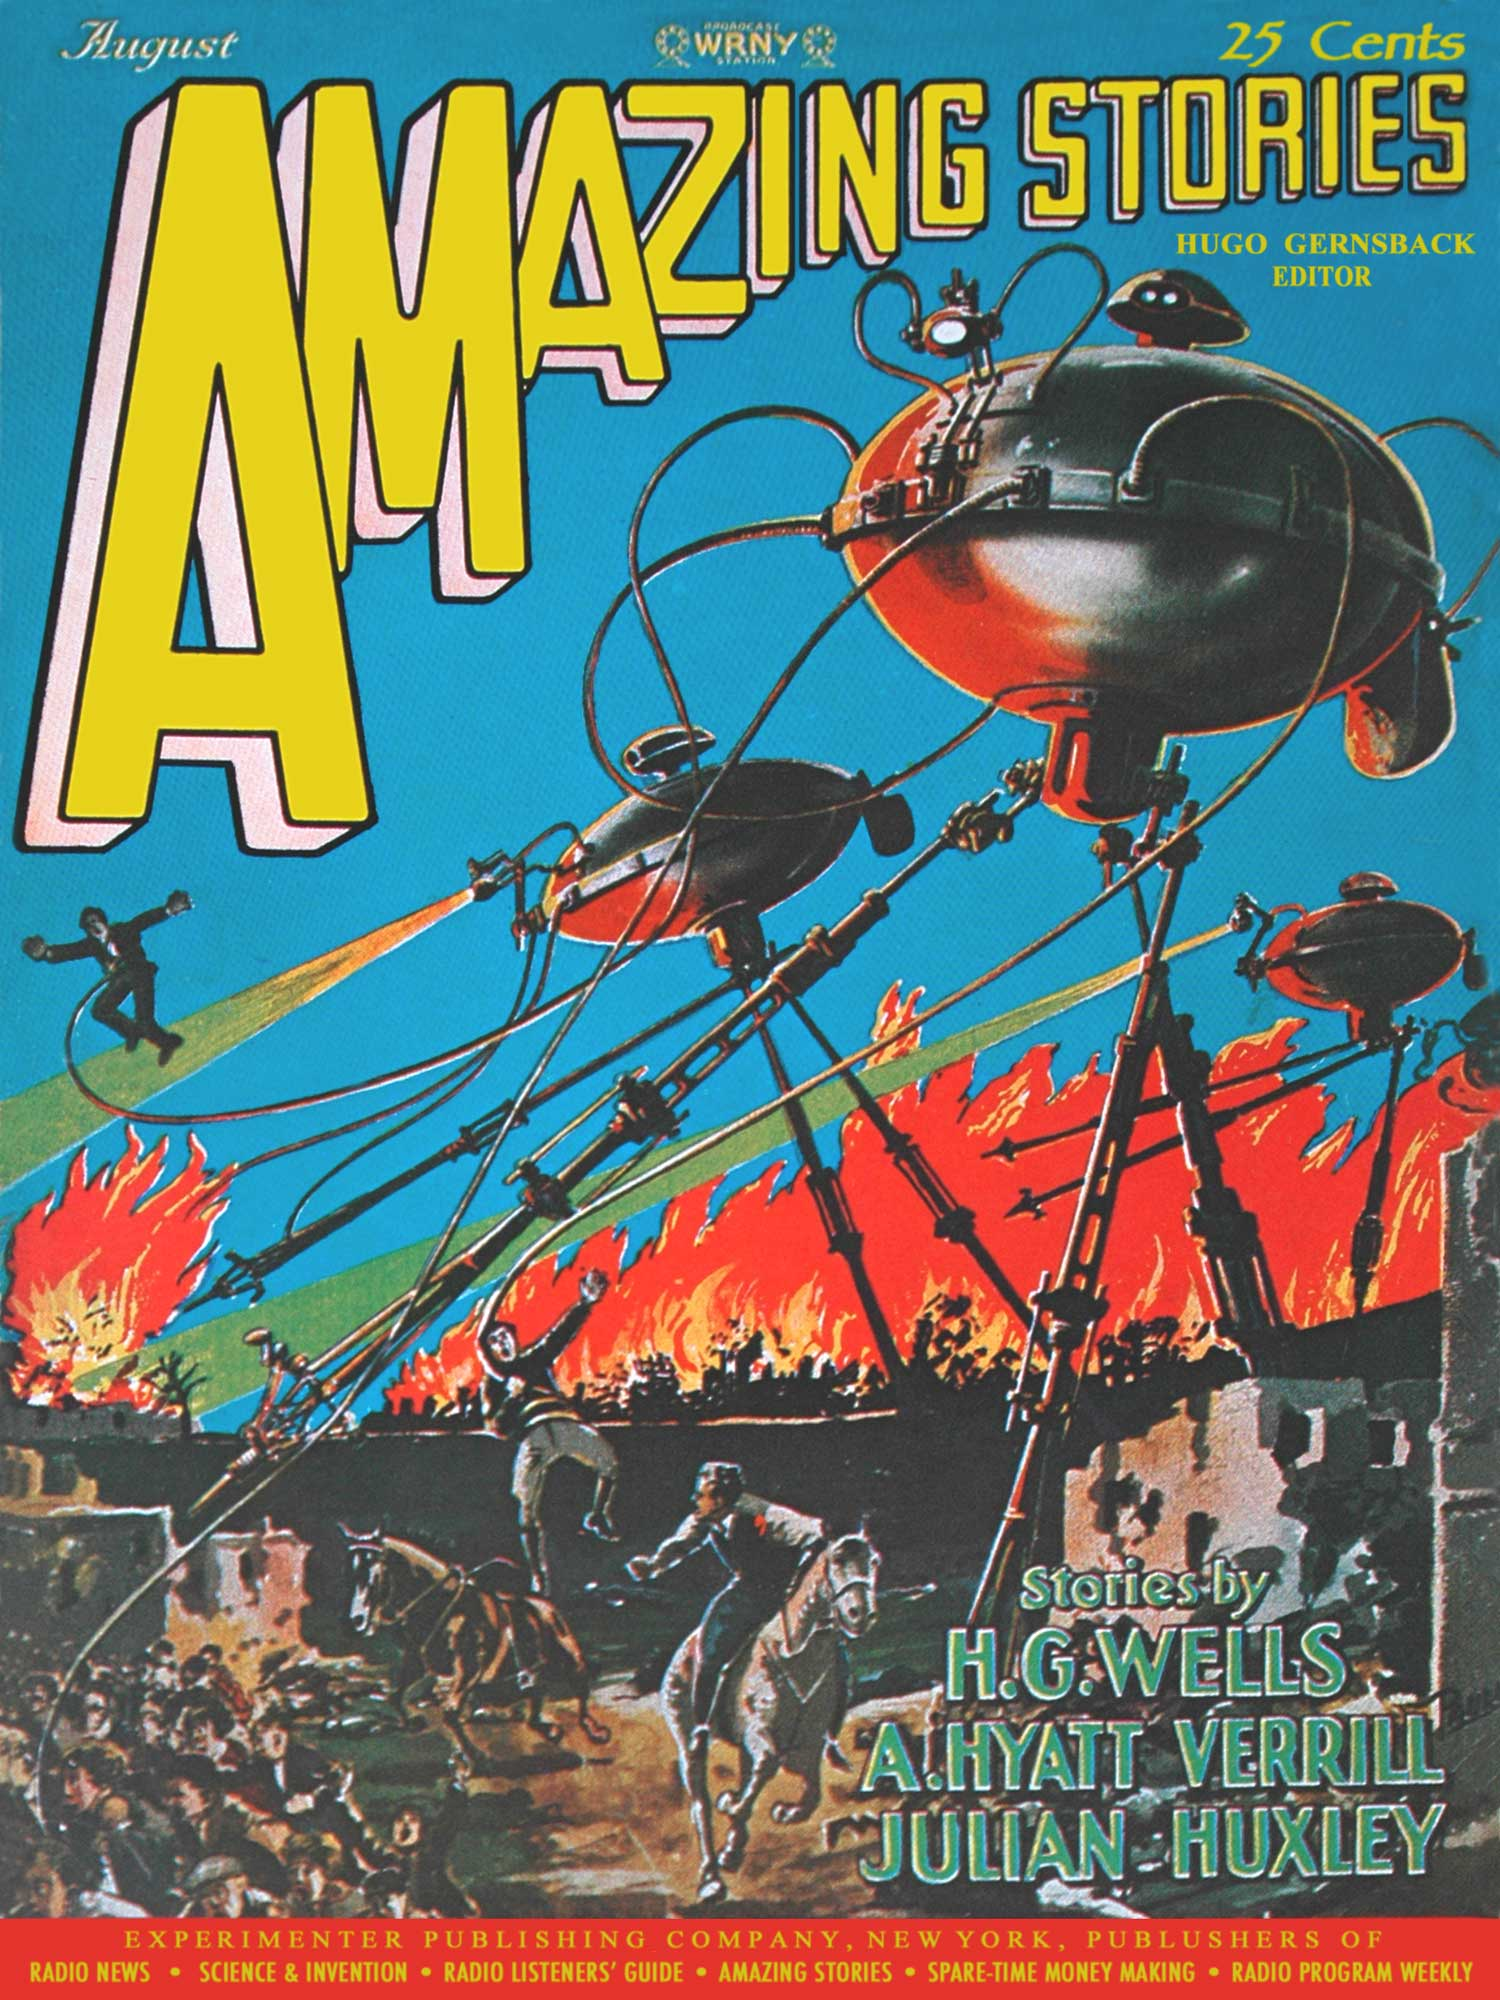 Adventures in Art – Frank R. Paul (1) The Gernsback Years